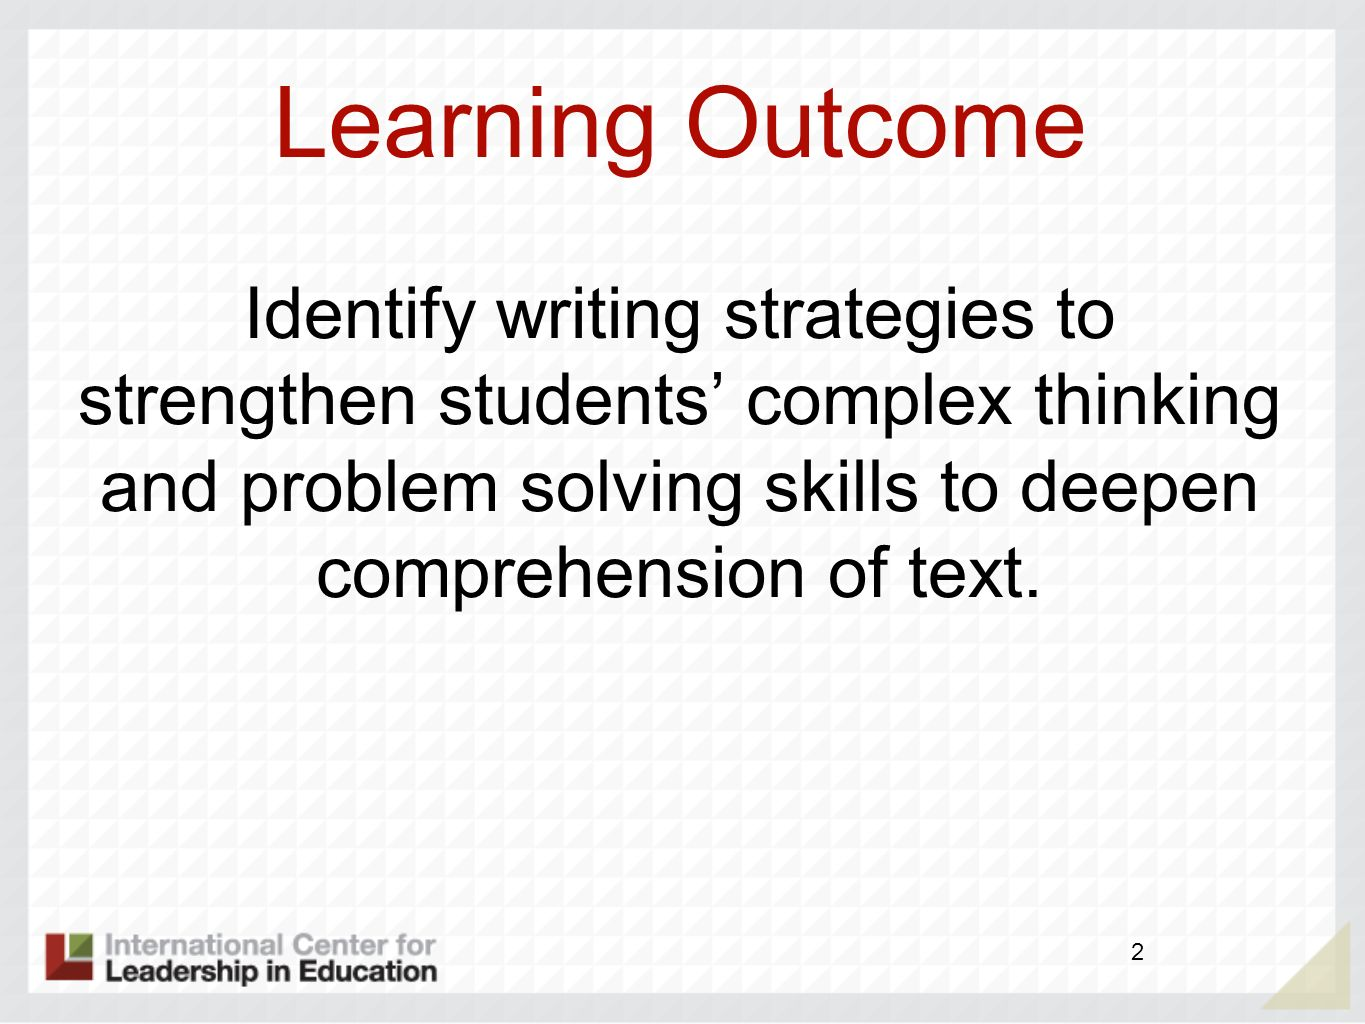 Learning OutcomeIdentify writing strategies to strengthen students' complex thinking and problem solving skills to deepen comprehension of text.